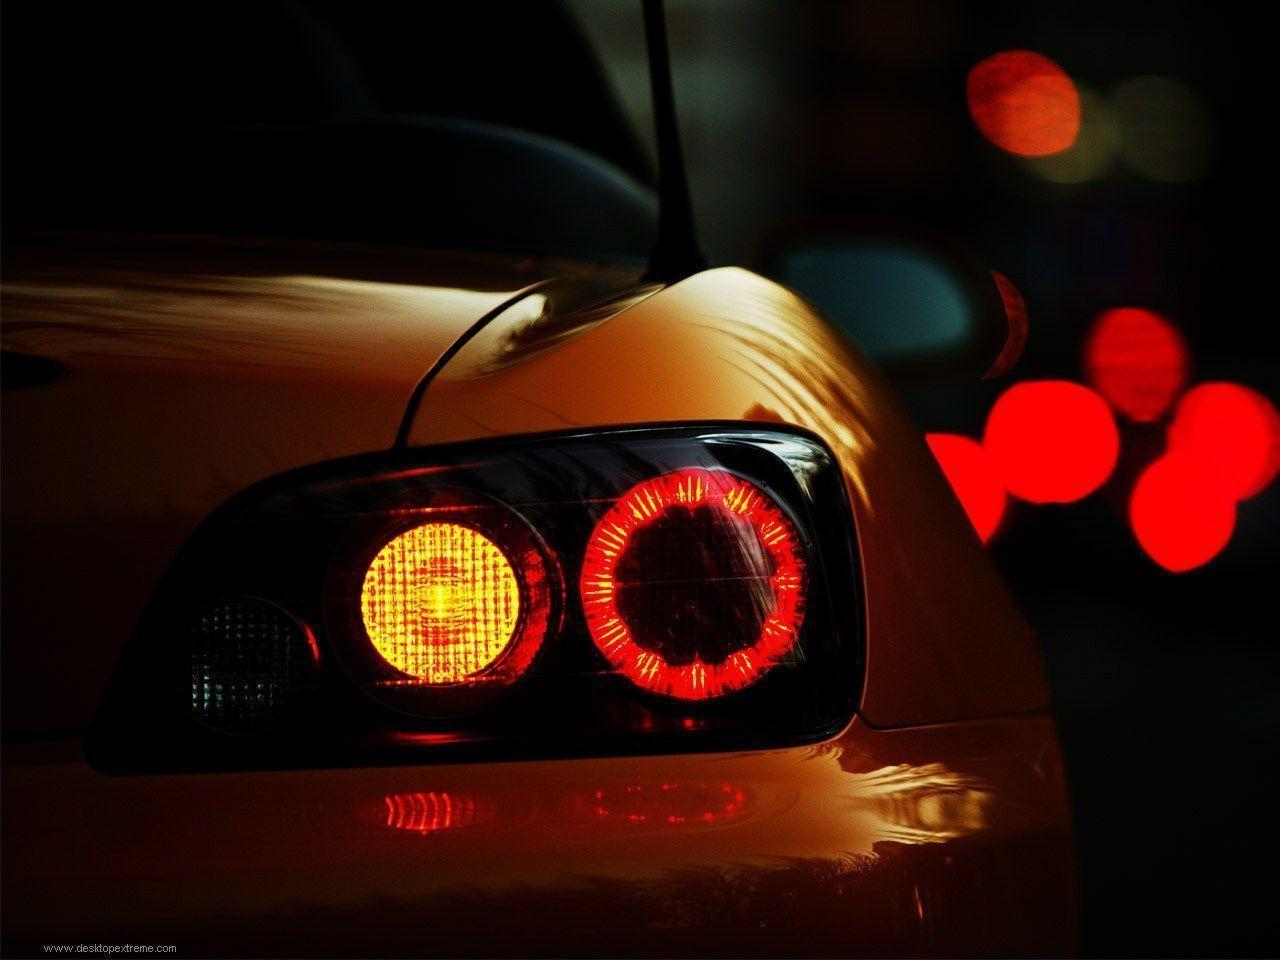 Modified S2000 >> Honda S2000 Wallpapers - Wallpaper Cave